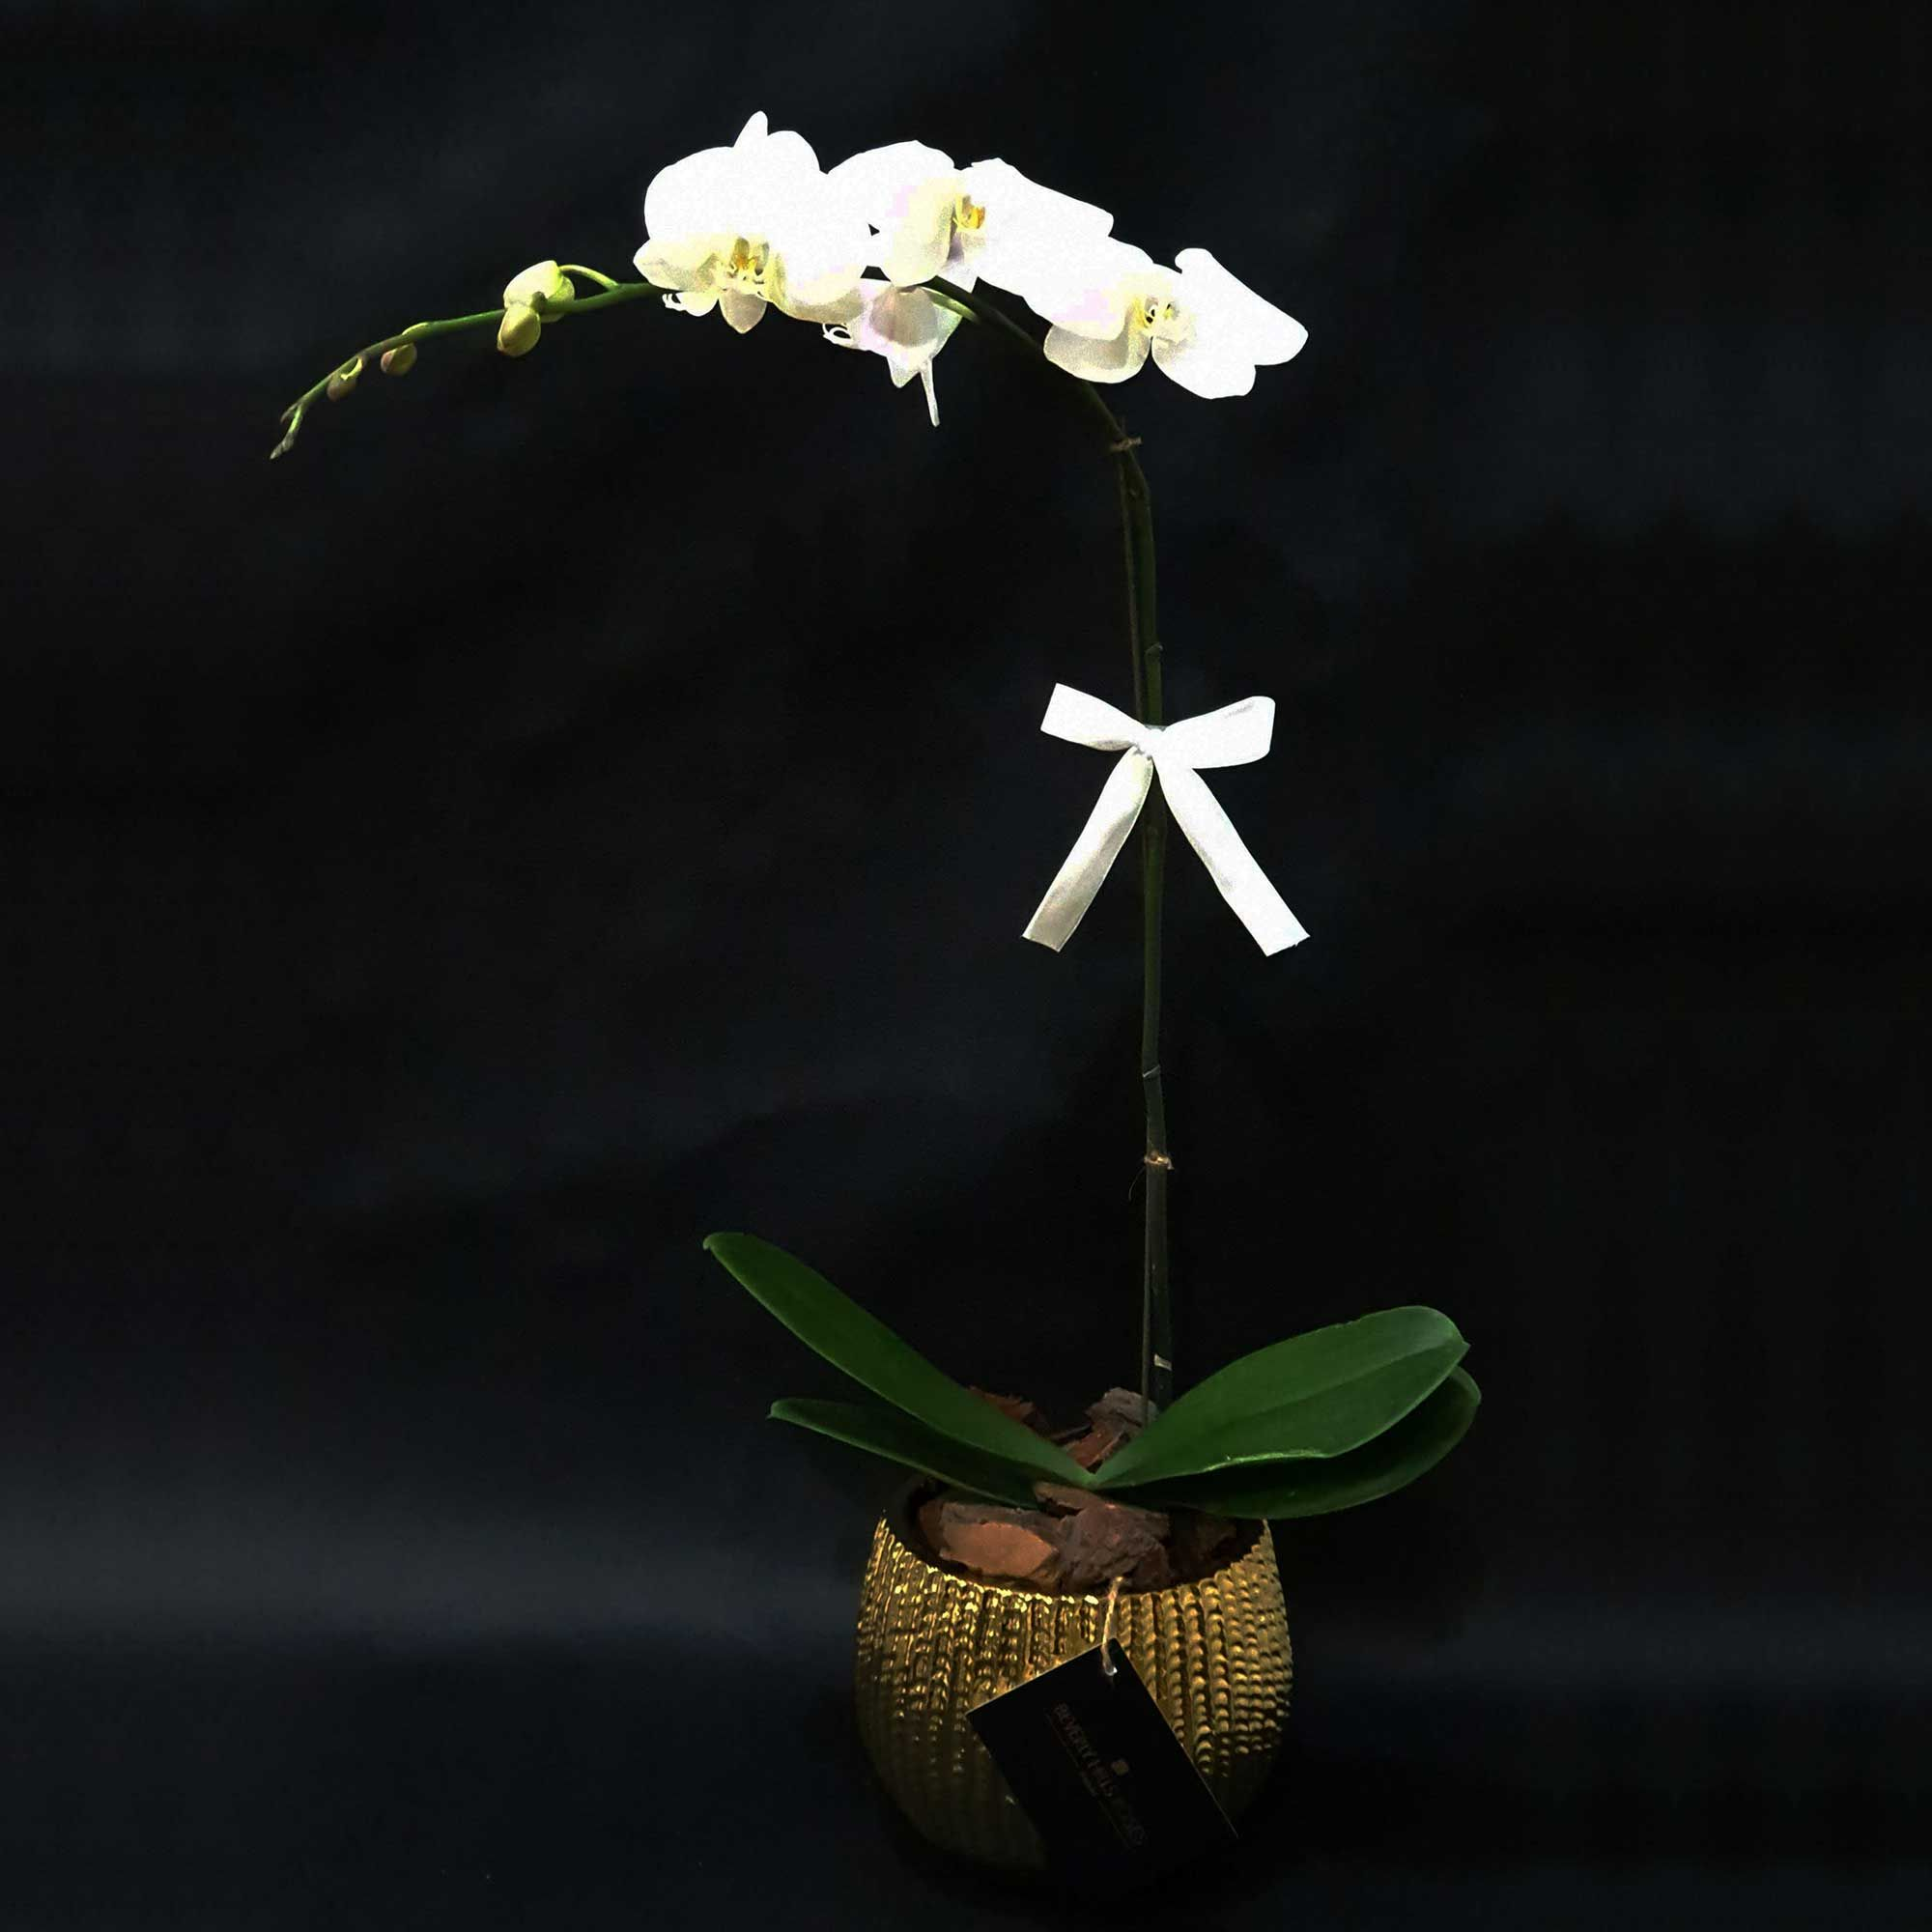 Buy Orchid Uae White Order Flowers Abu Dhabi Flower Deliveries Dubai In 2020 Buy Orchids White Orchids Flower Delivery